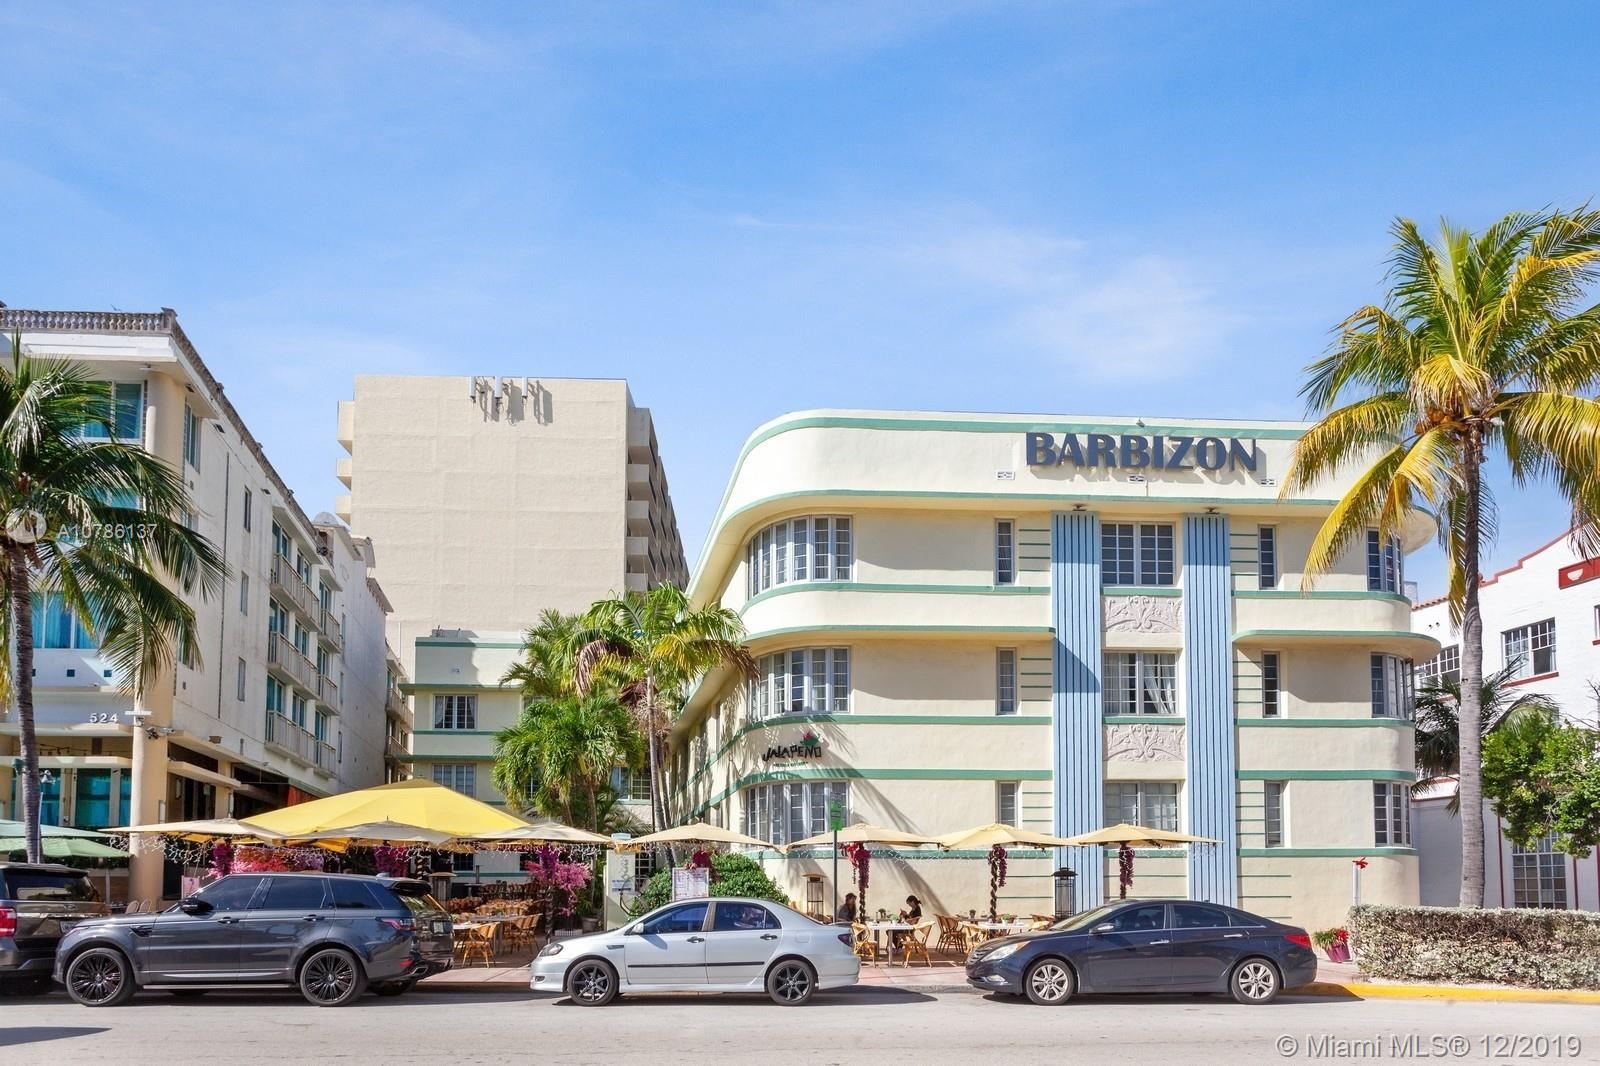 530 Ocean Dr, 216 - Miami Beach, Florida